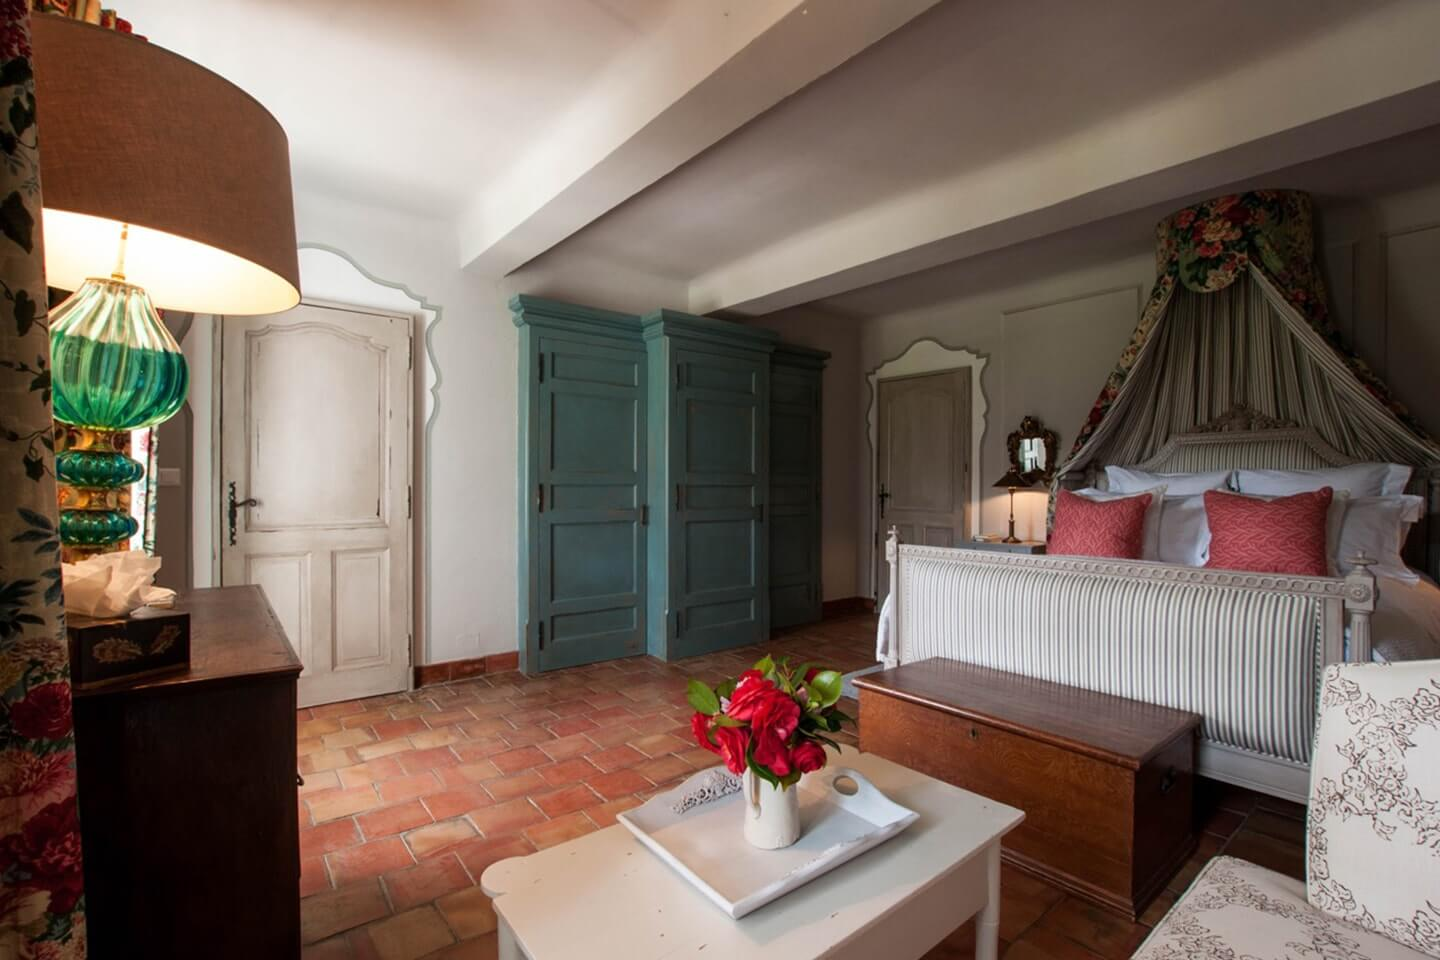 Le Preverger Room and Accommodation